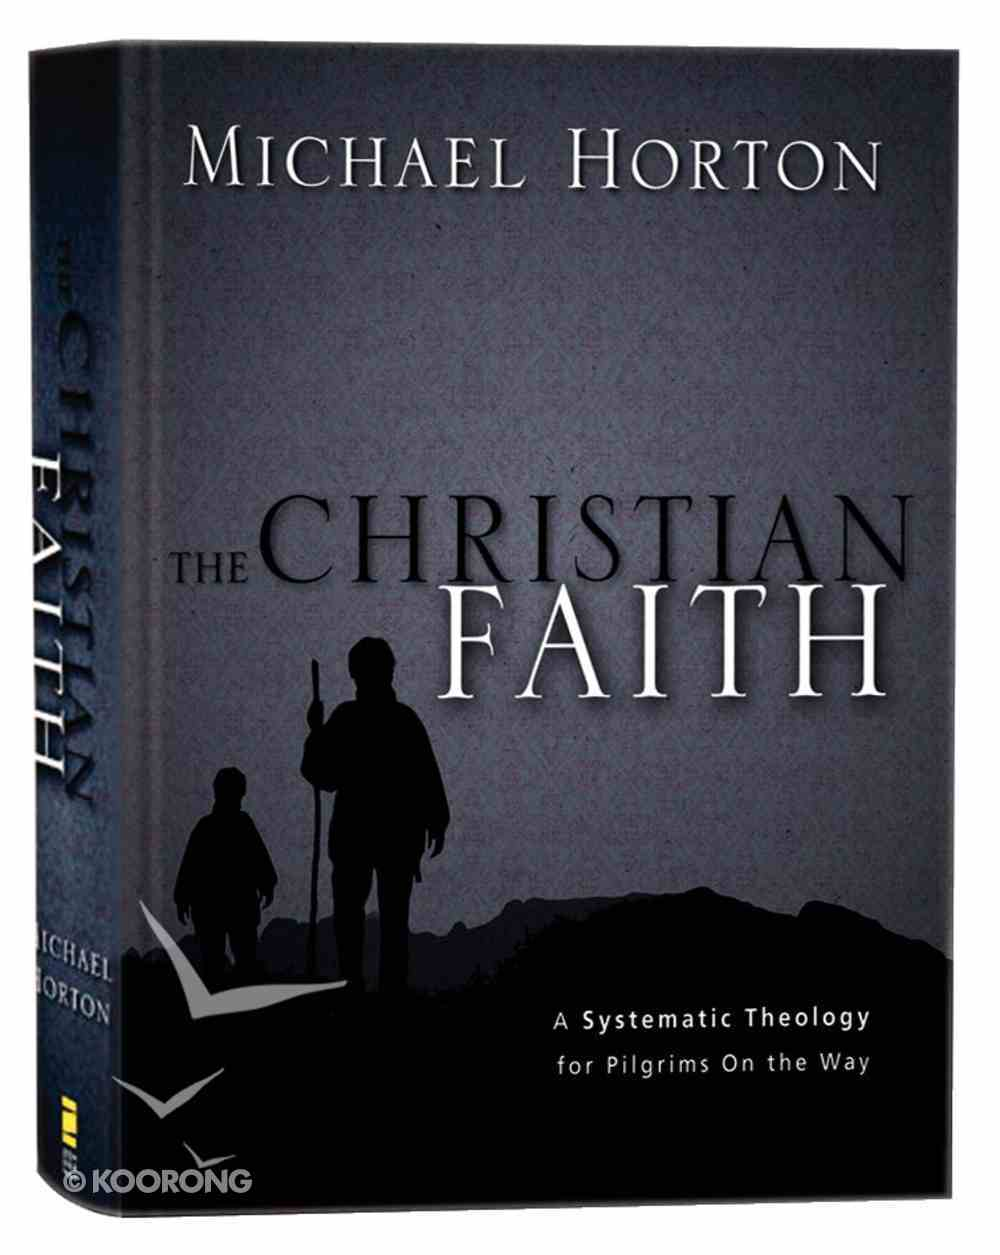 The Christian Faith: A Systematic Theology For Pilgrims on the Way Hardback